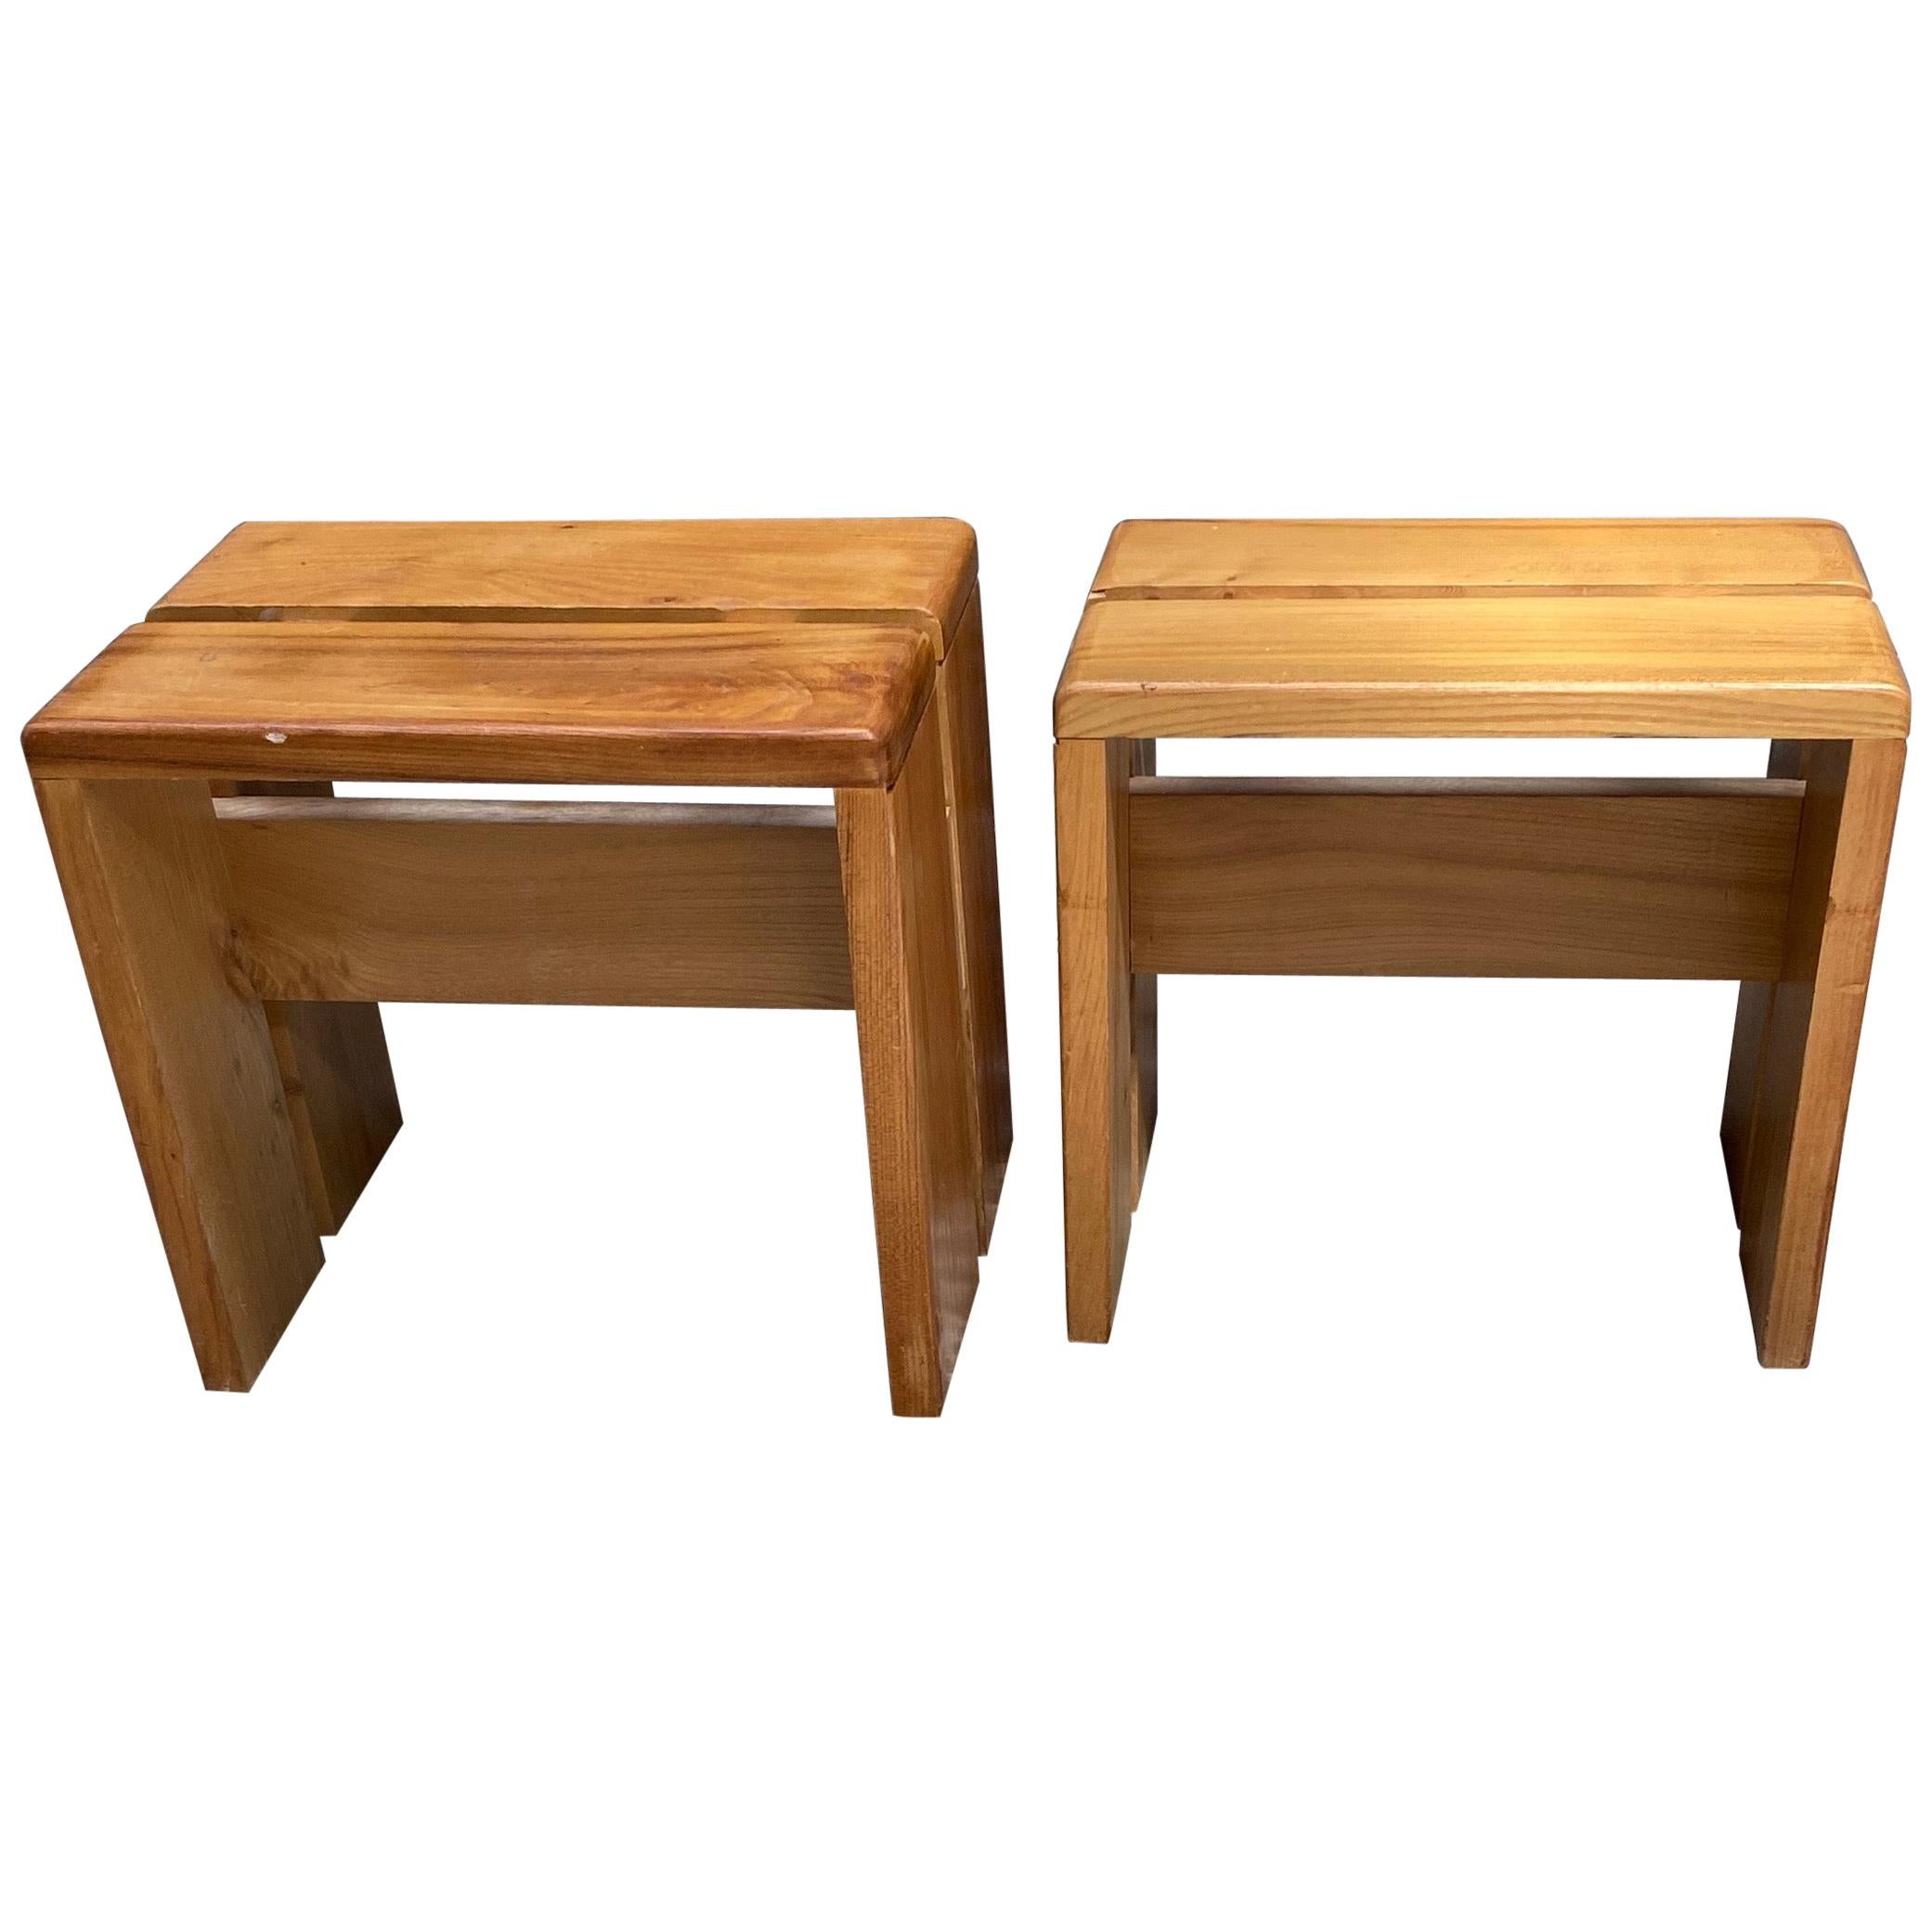 Charlotte Perriand Pair of Ash Stools